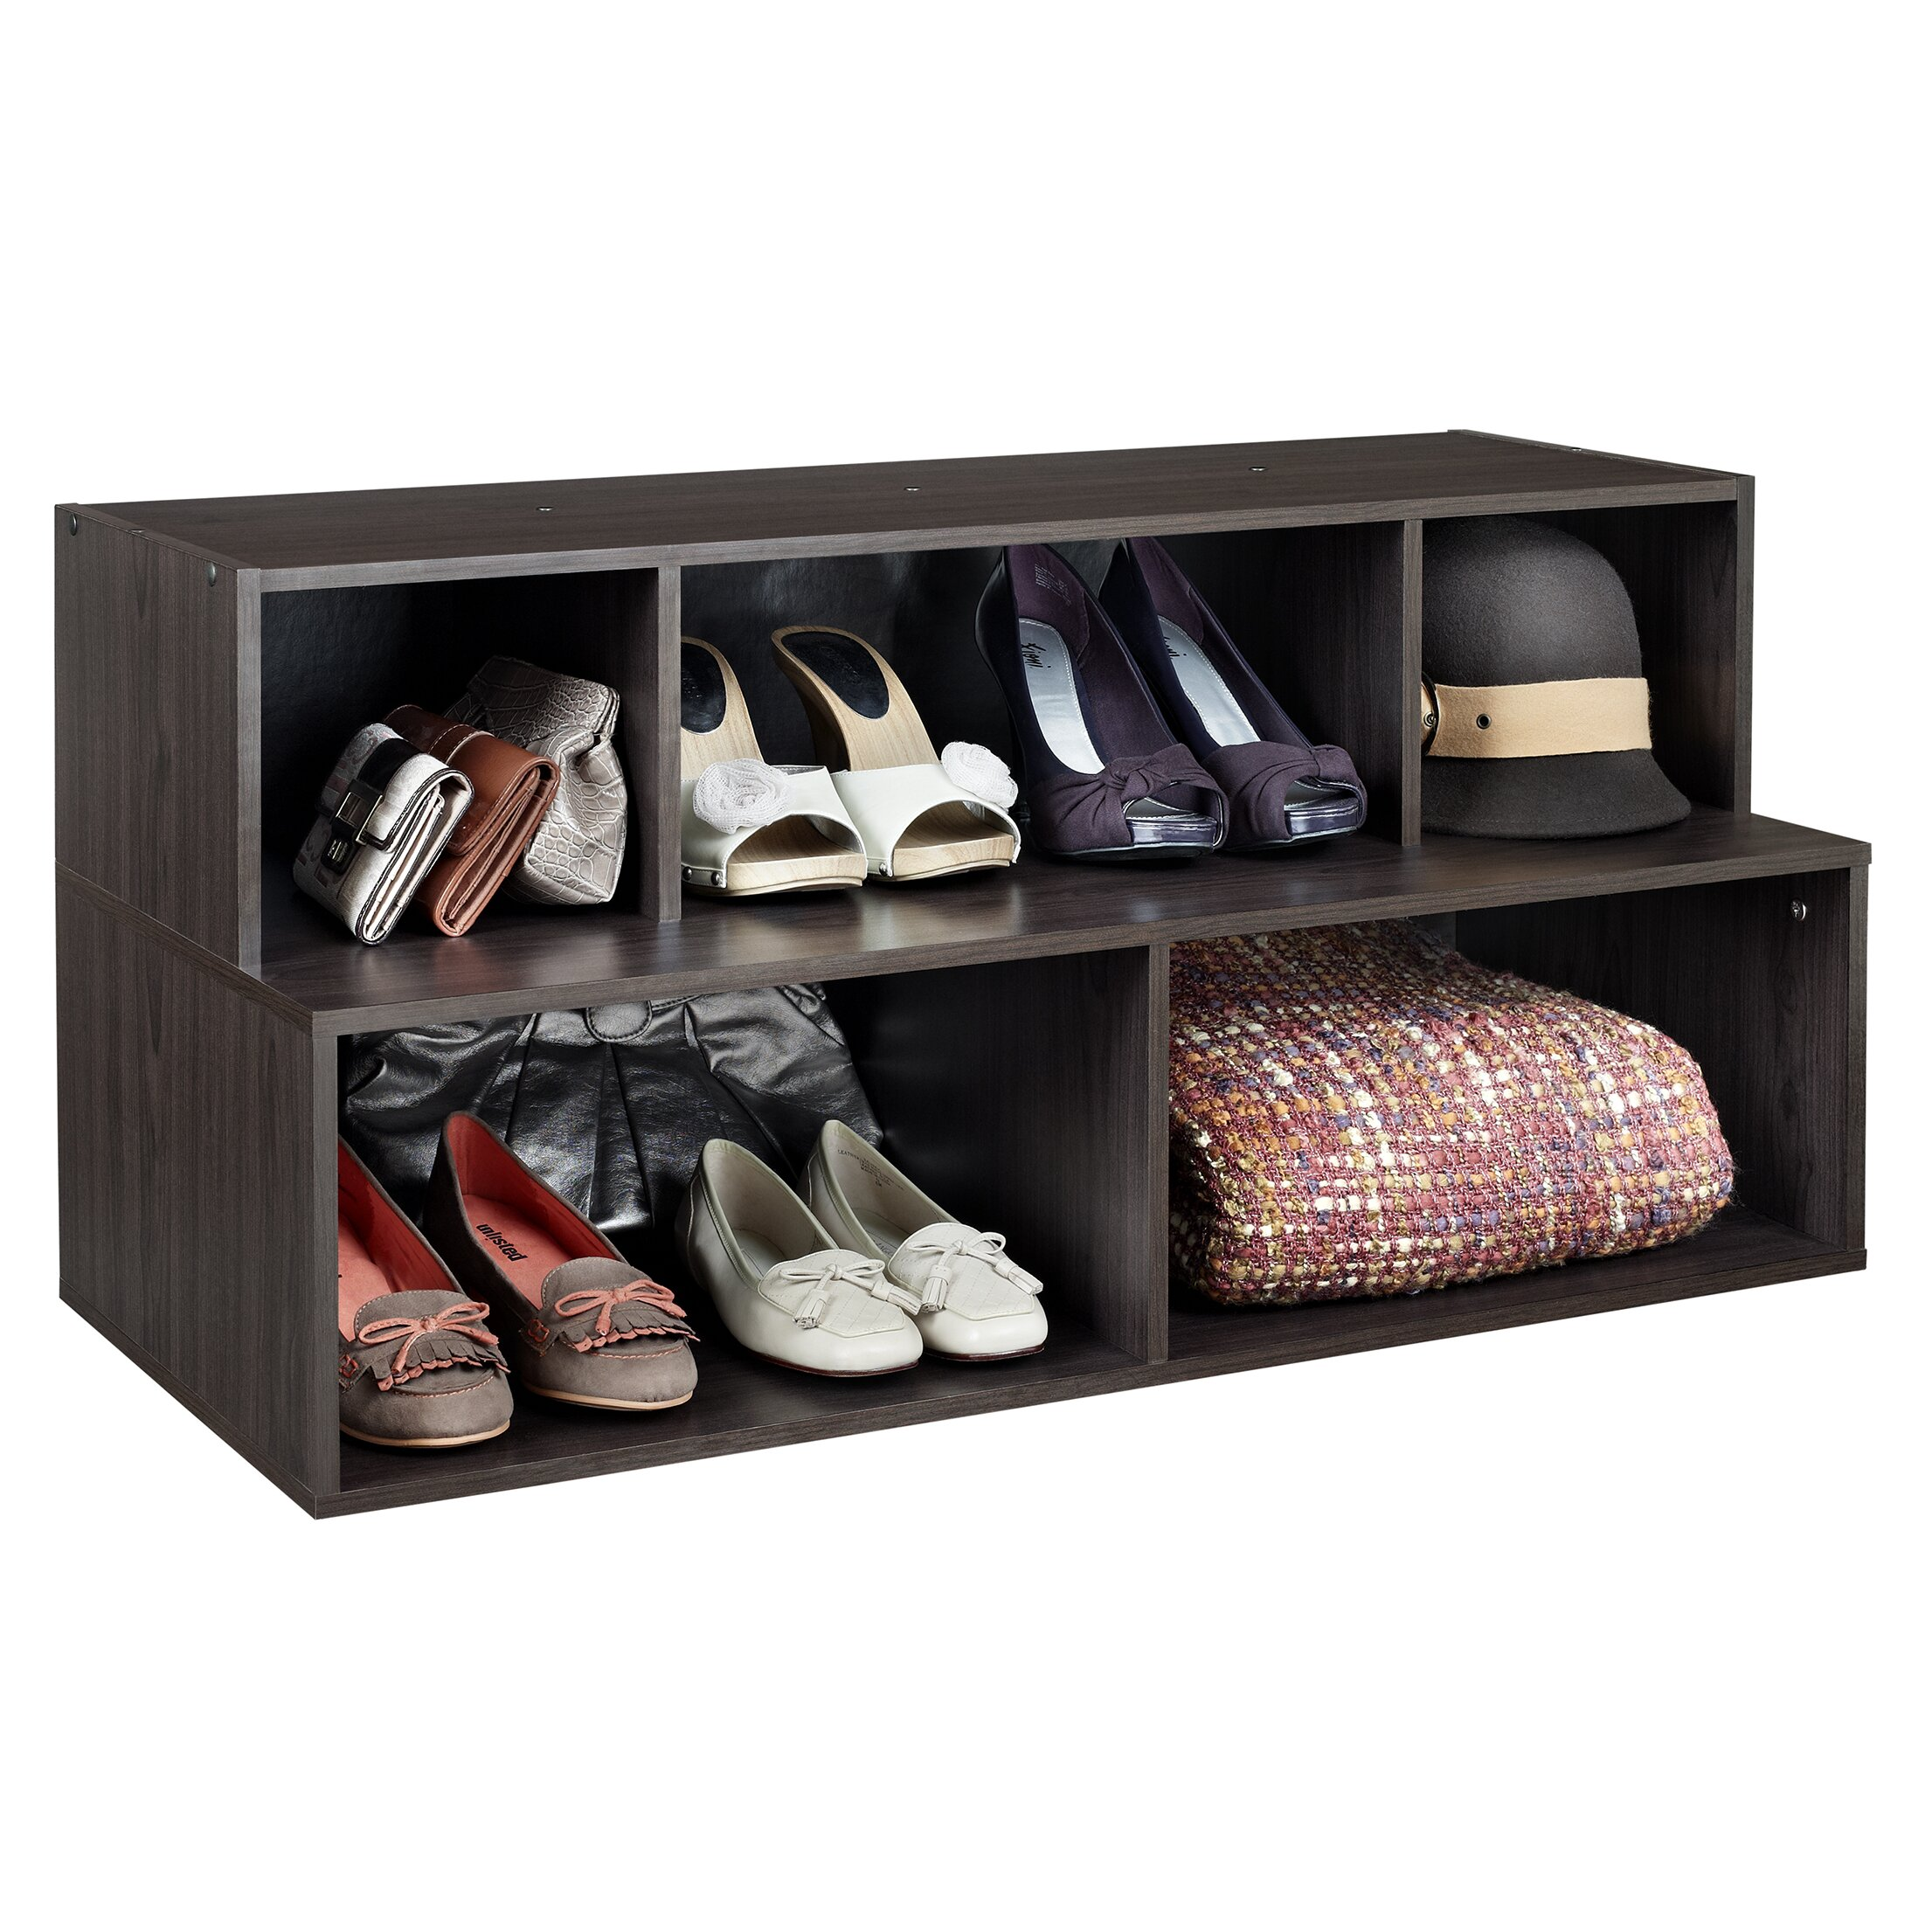 New Rubbermaid Closet System Anium Ideas